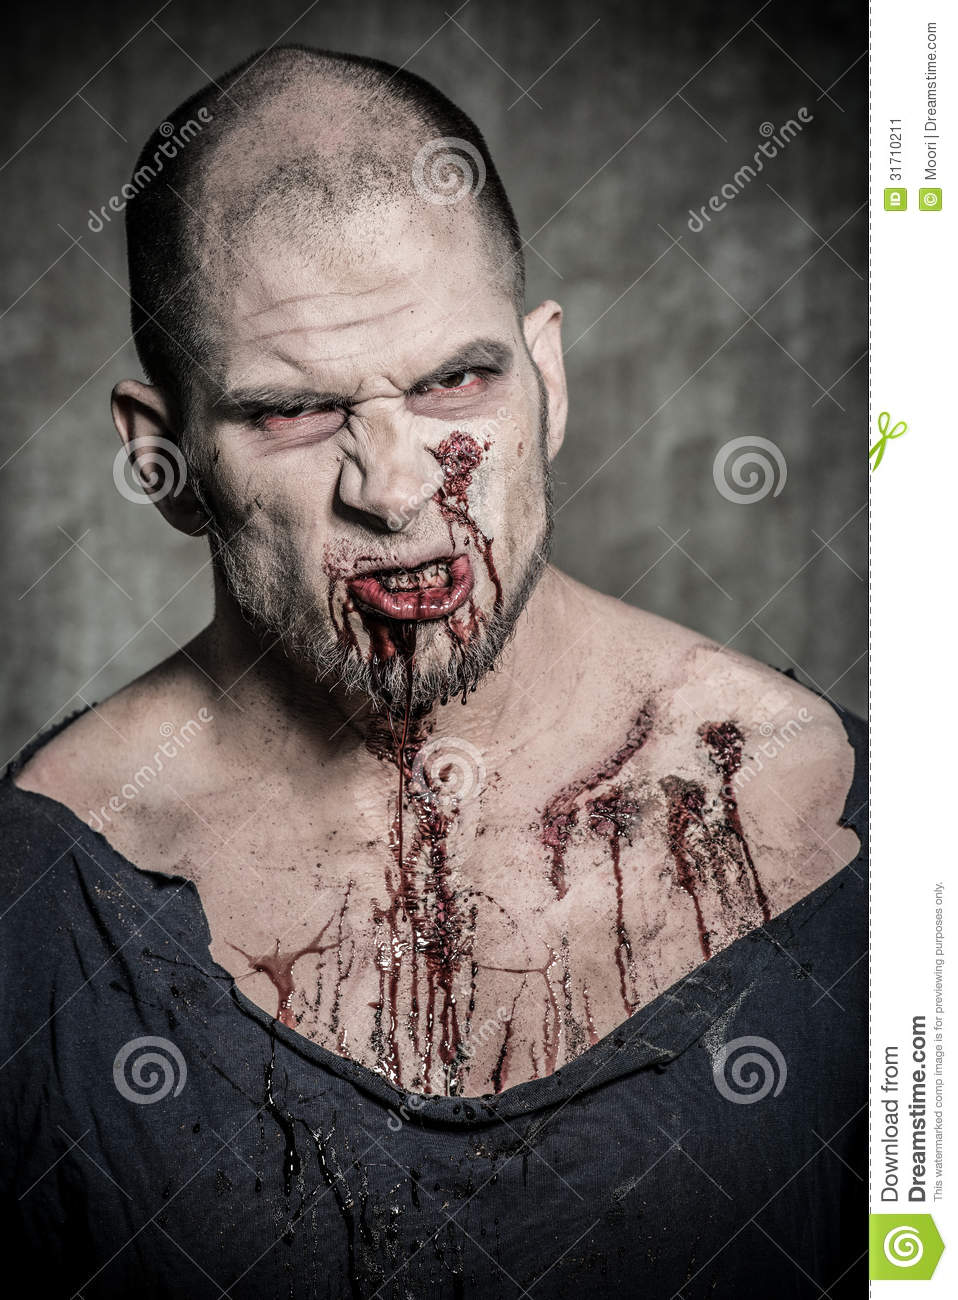 Scary And Bloody Zombie Man Stock Image - Image: 31710211